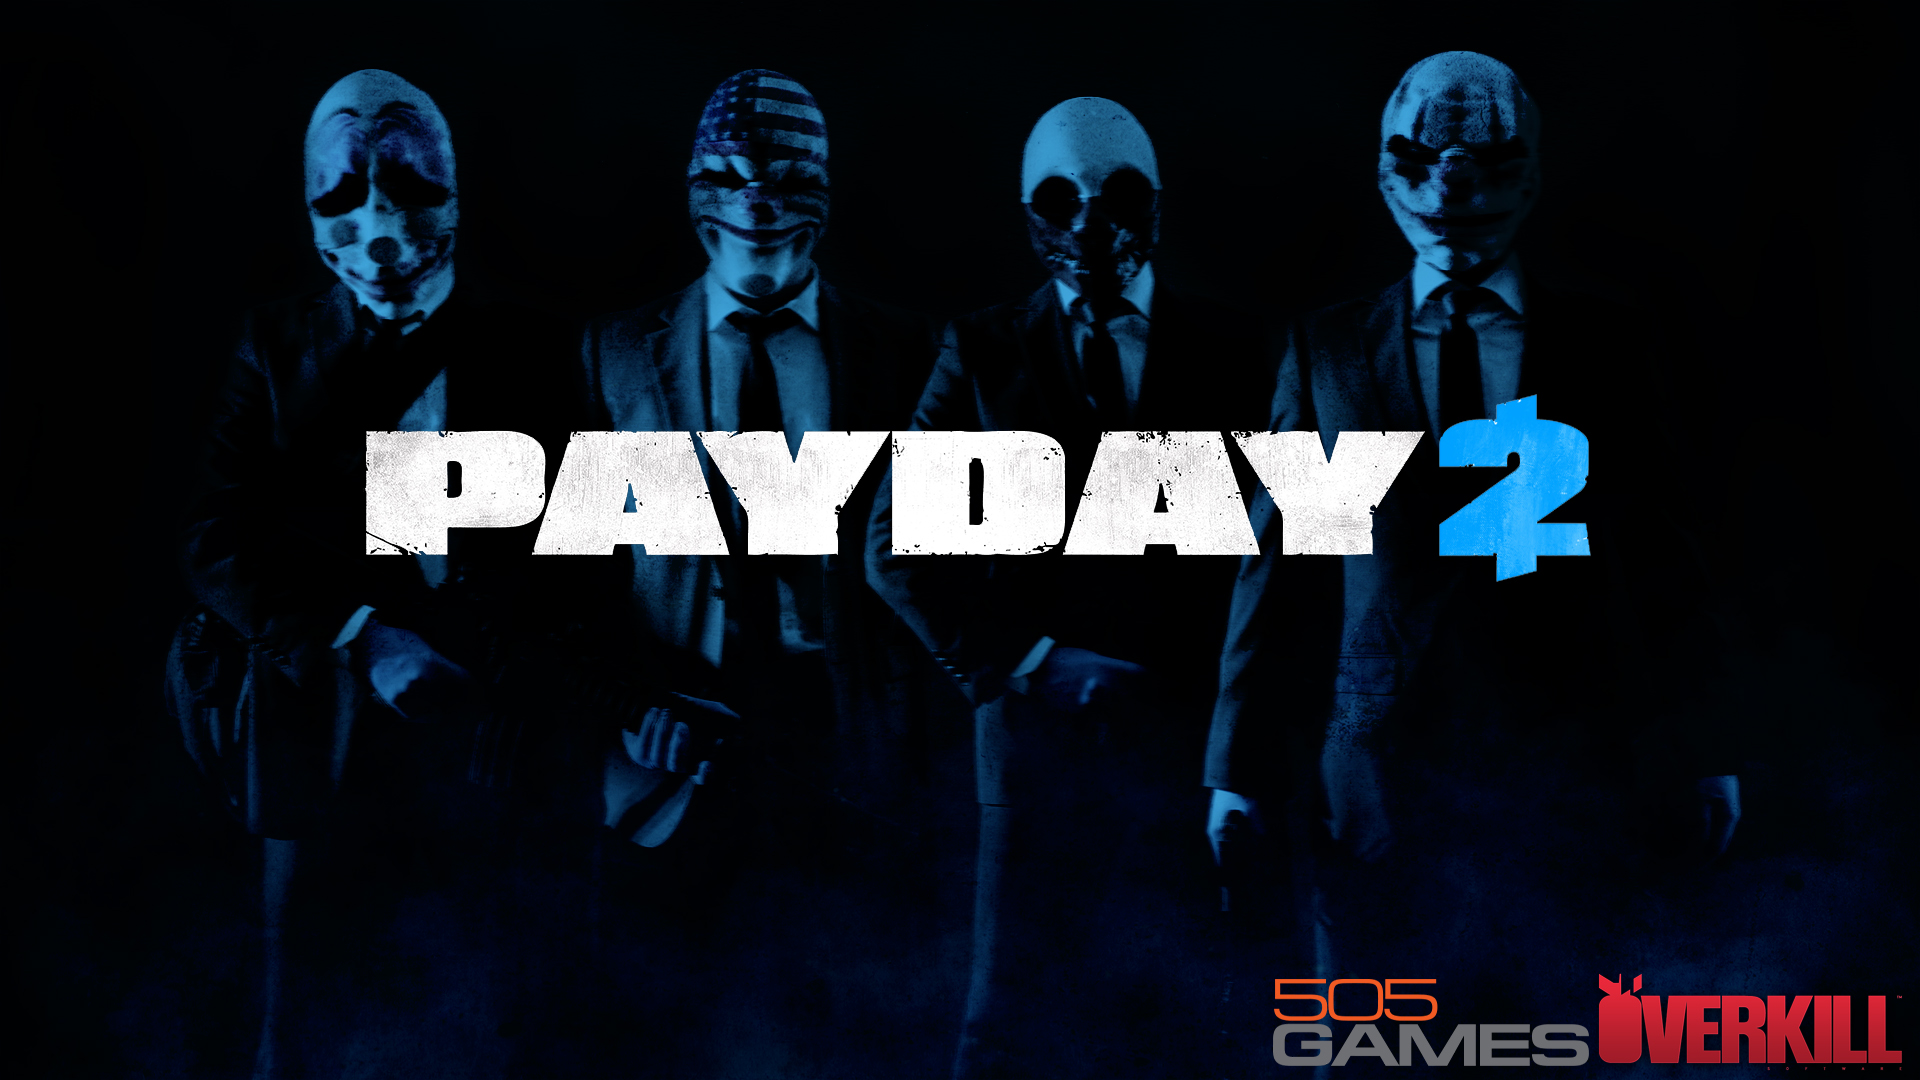 Made This Wallpaper In Anticipation For PAYDAY 2